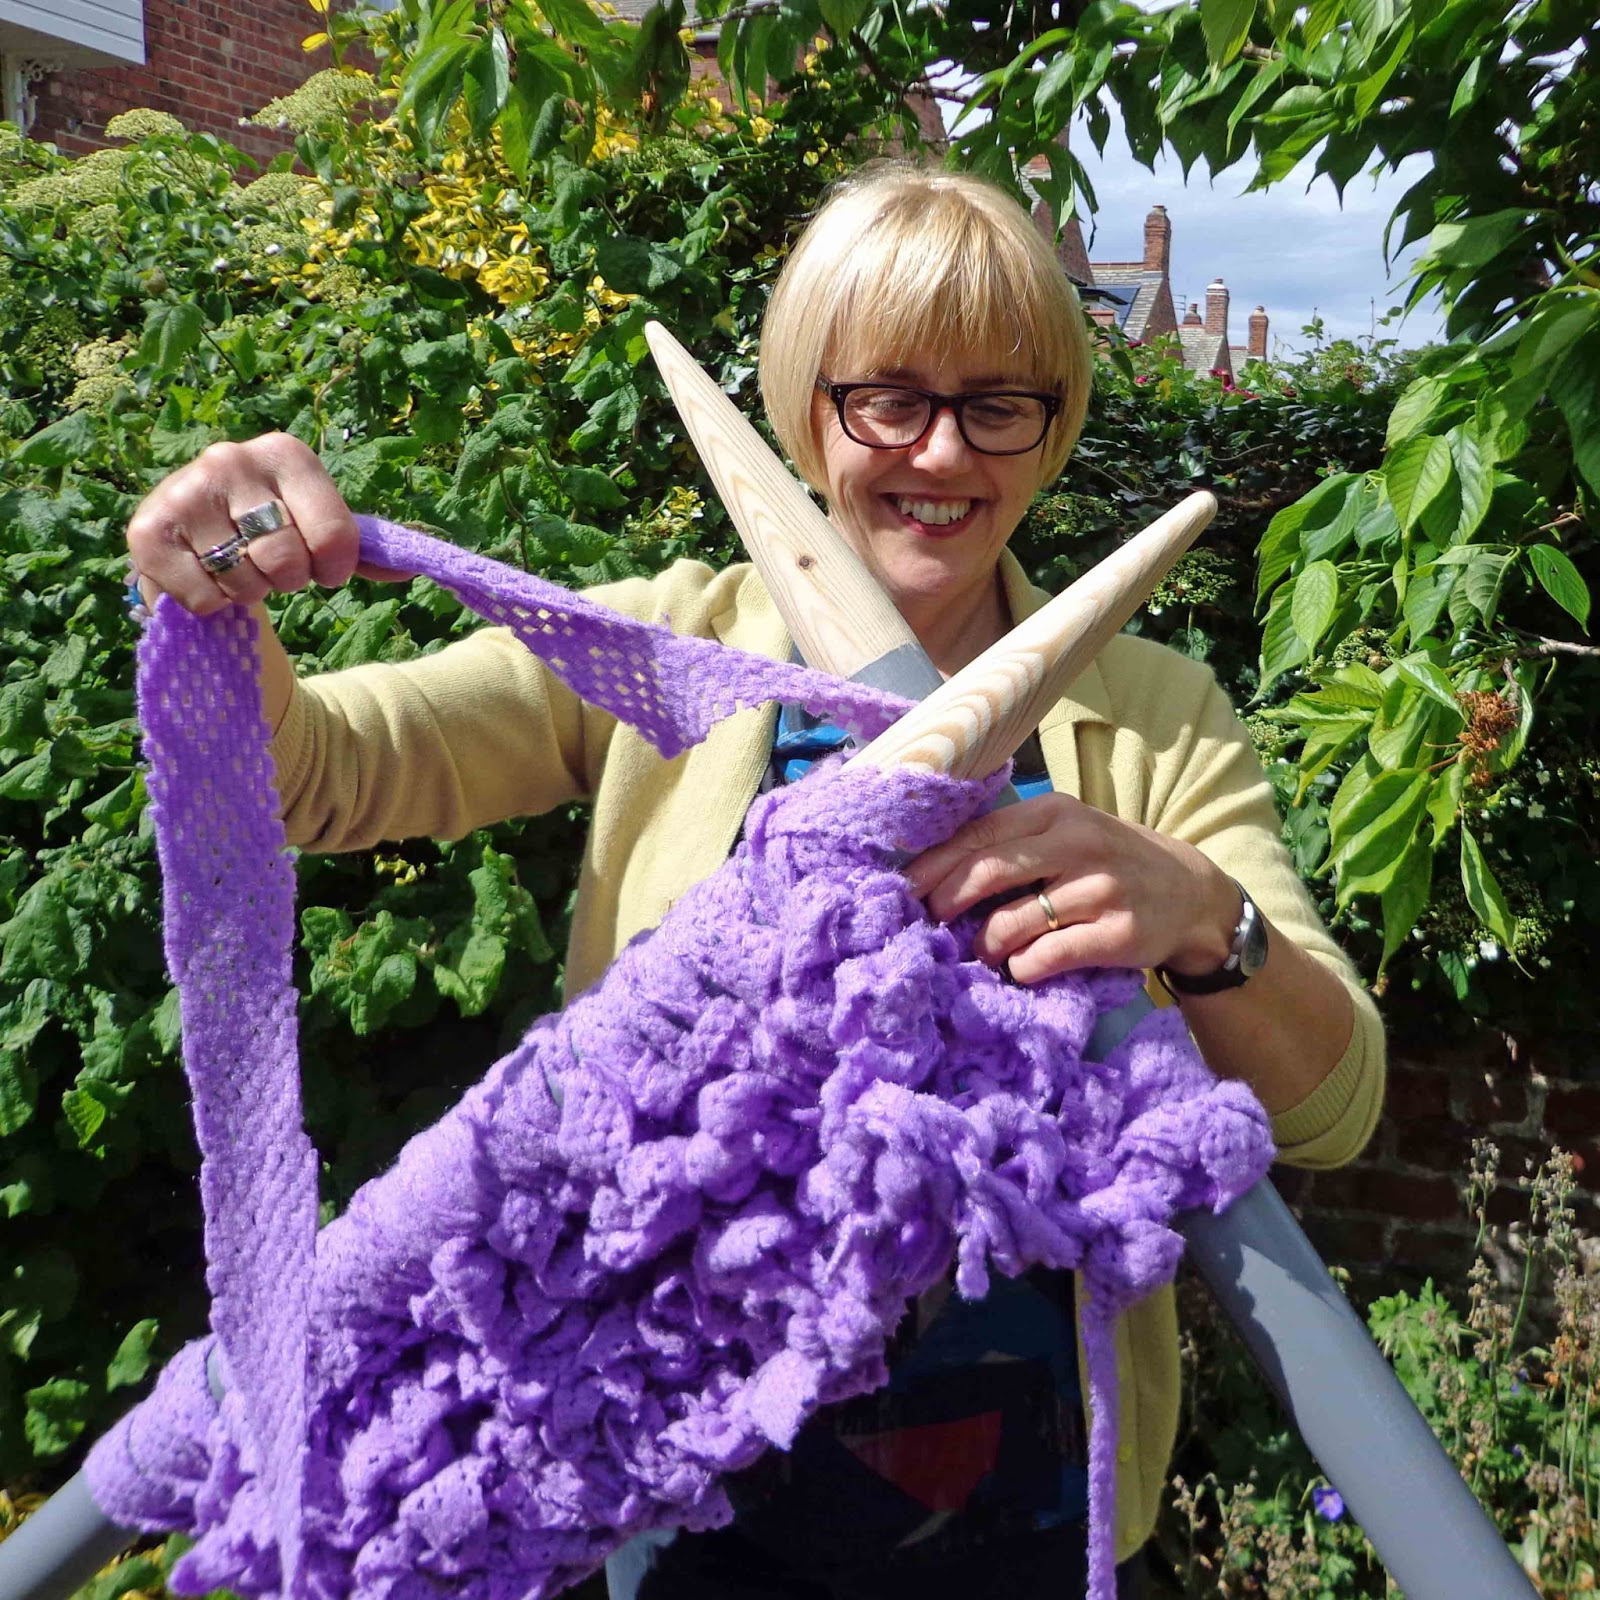 Giant Knitting Needles Uk : Hippystitch extreme knitting on needles